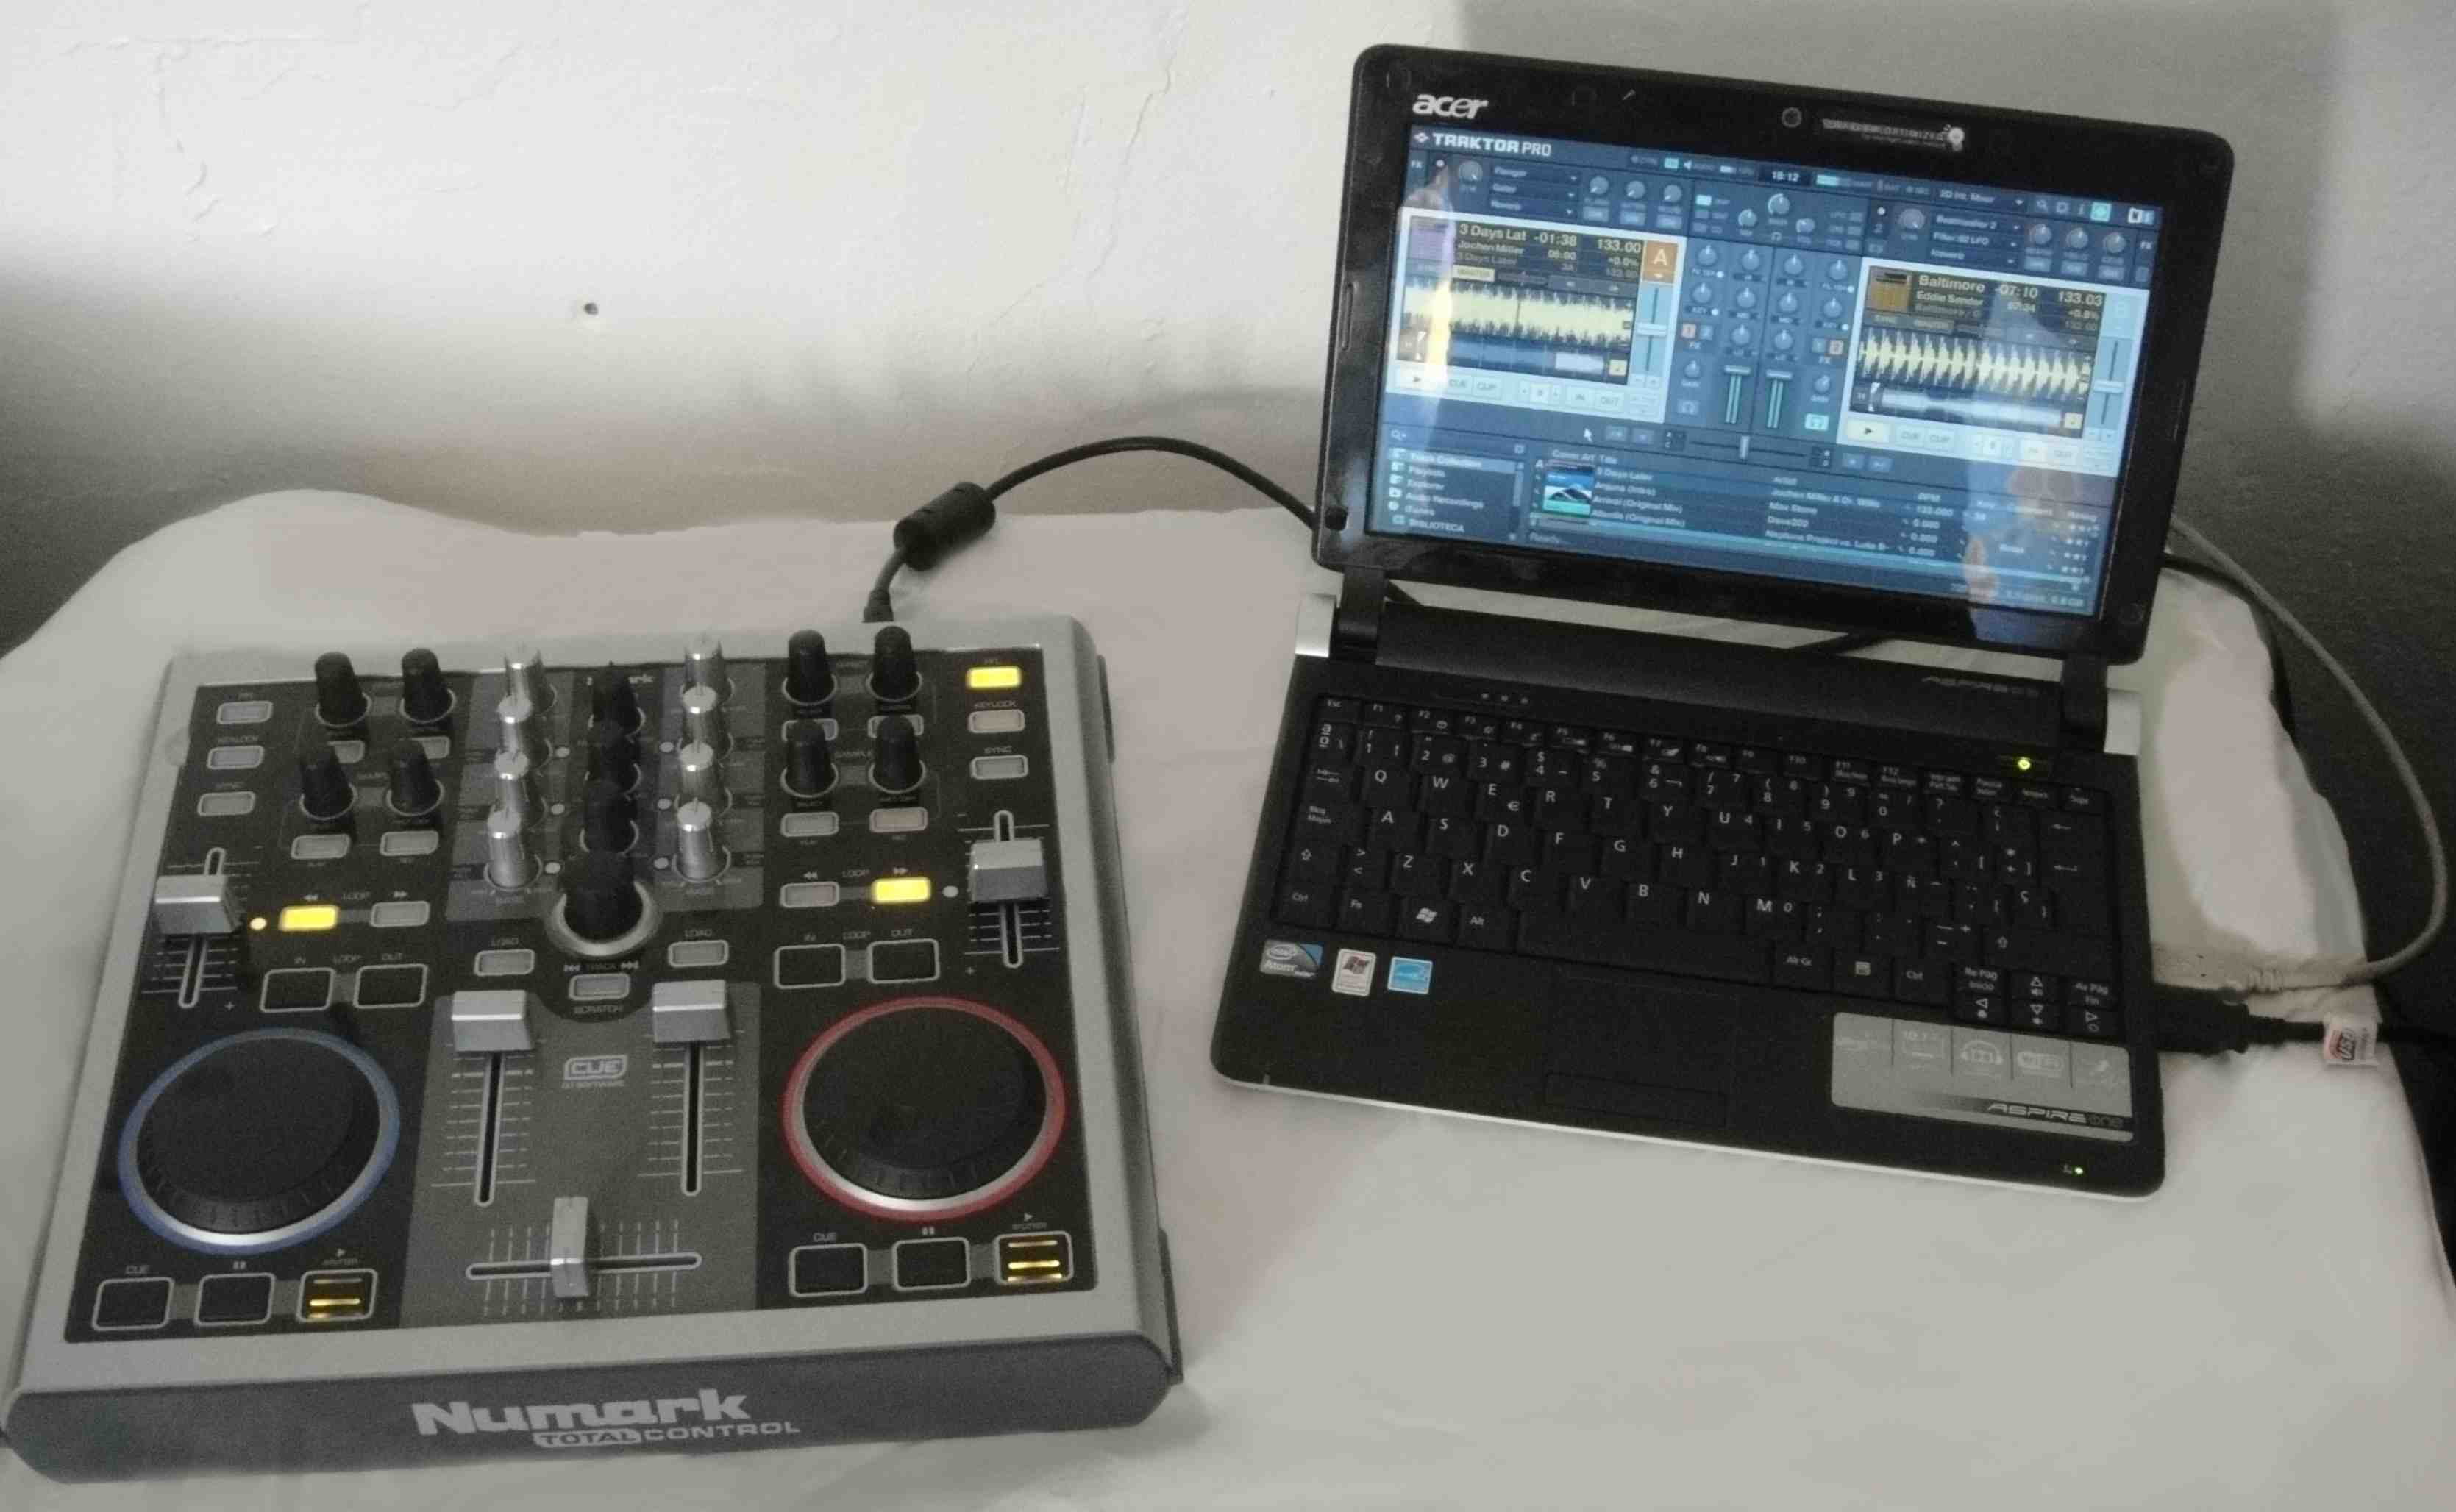 A Numark Total Control and a netbook